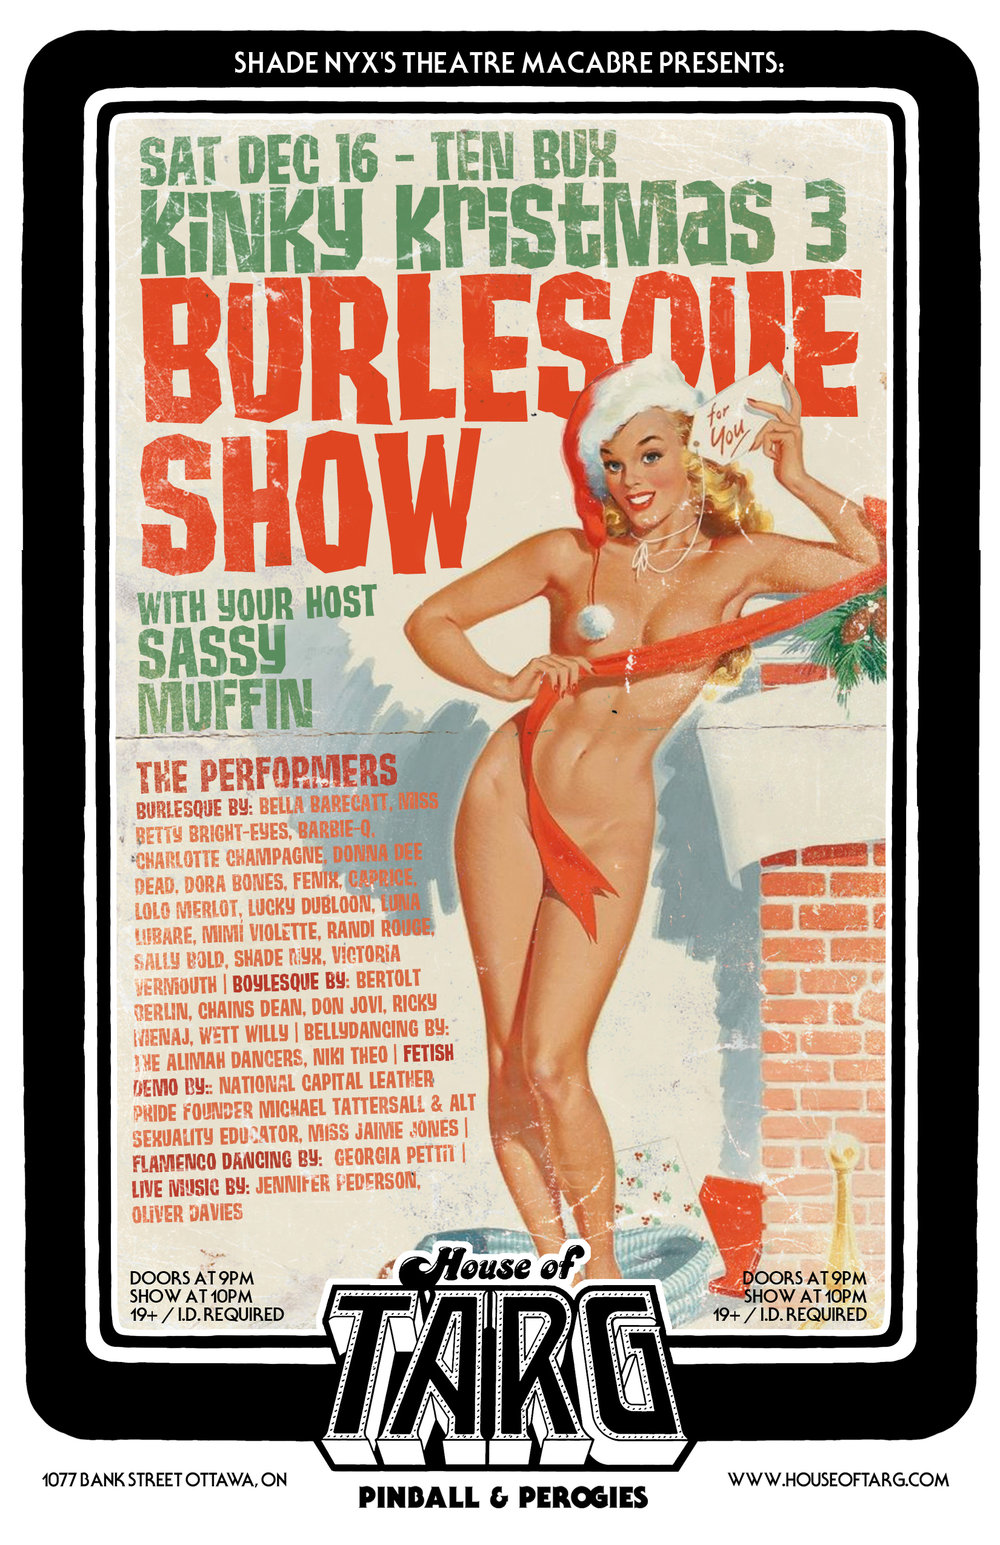 Sat Dec 16   BURLESQUE SHOW: Kinky Kristmas 3  Shade Nyx and the best of the Ottawa Burlesque community is back with their annual xmas party in support of the Cornerstone Women's Shelter.Burlesque, Boylesque,Belly Dancing,Drag, Fetish, Live tunes  more details here